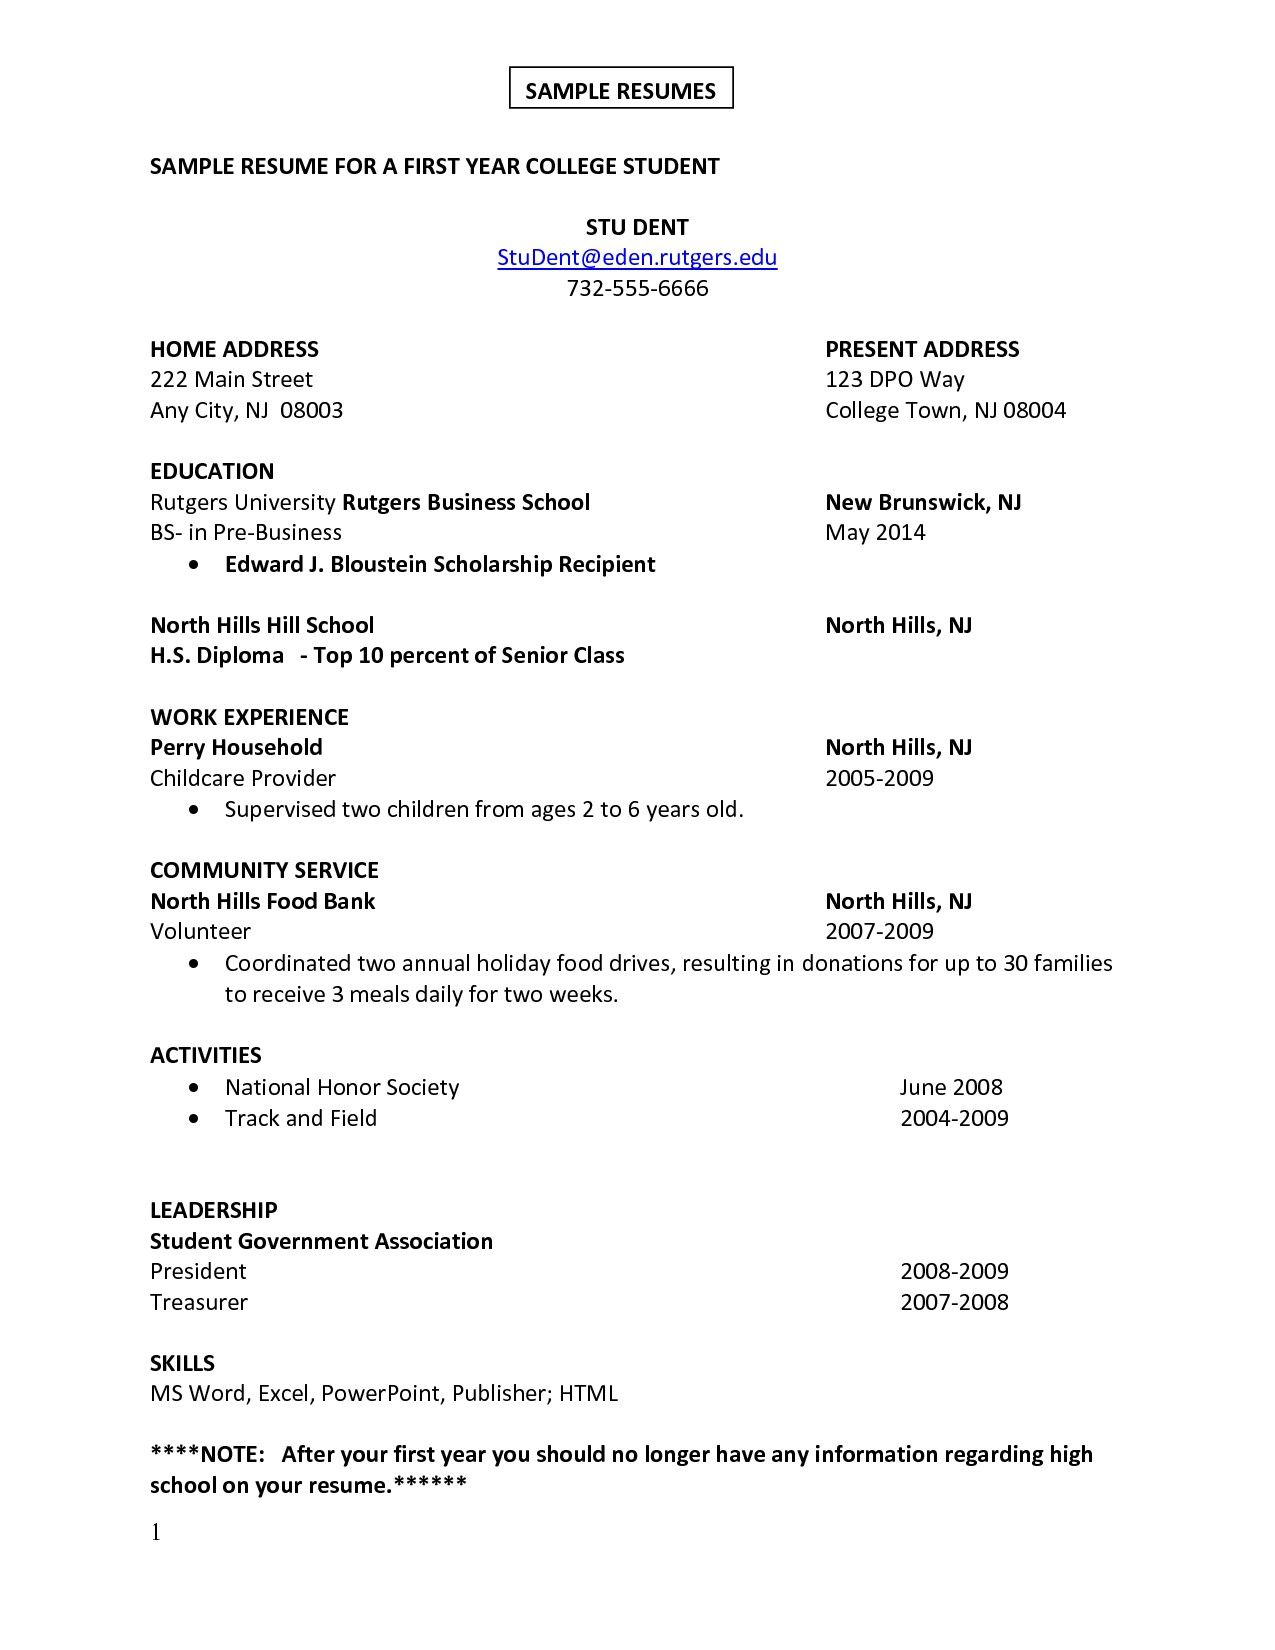 Resume Template For Students First Job  Resume Sample